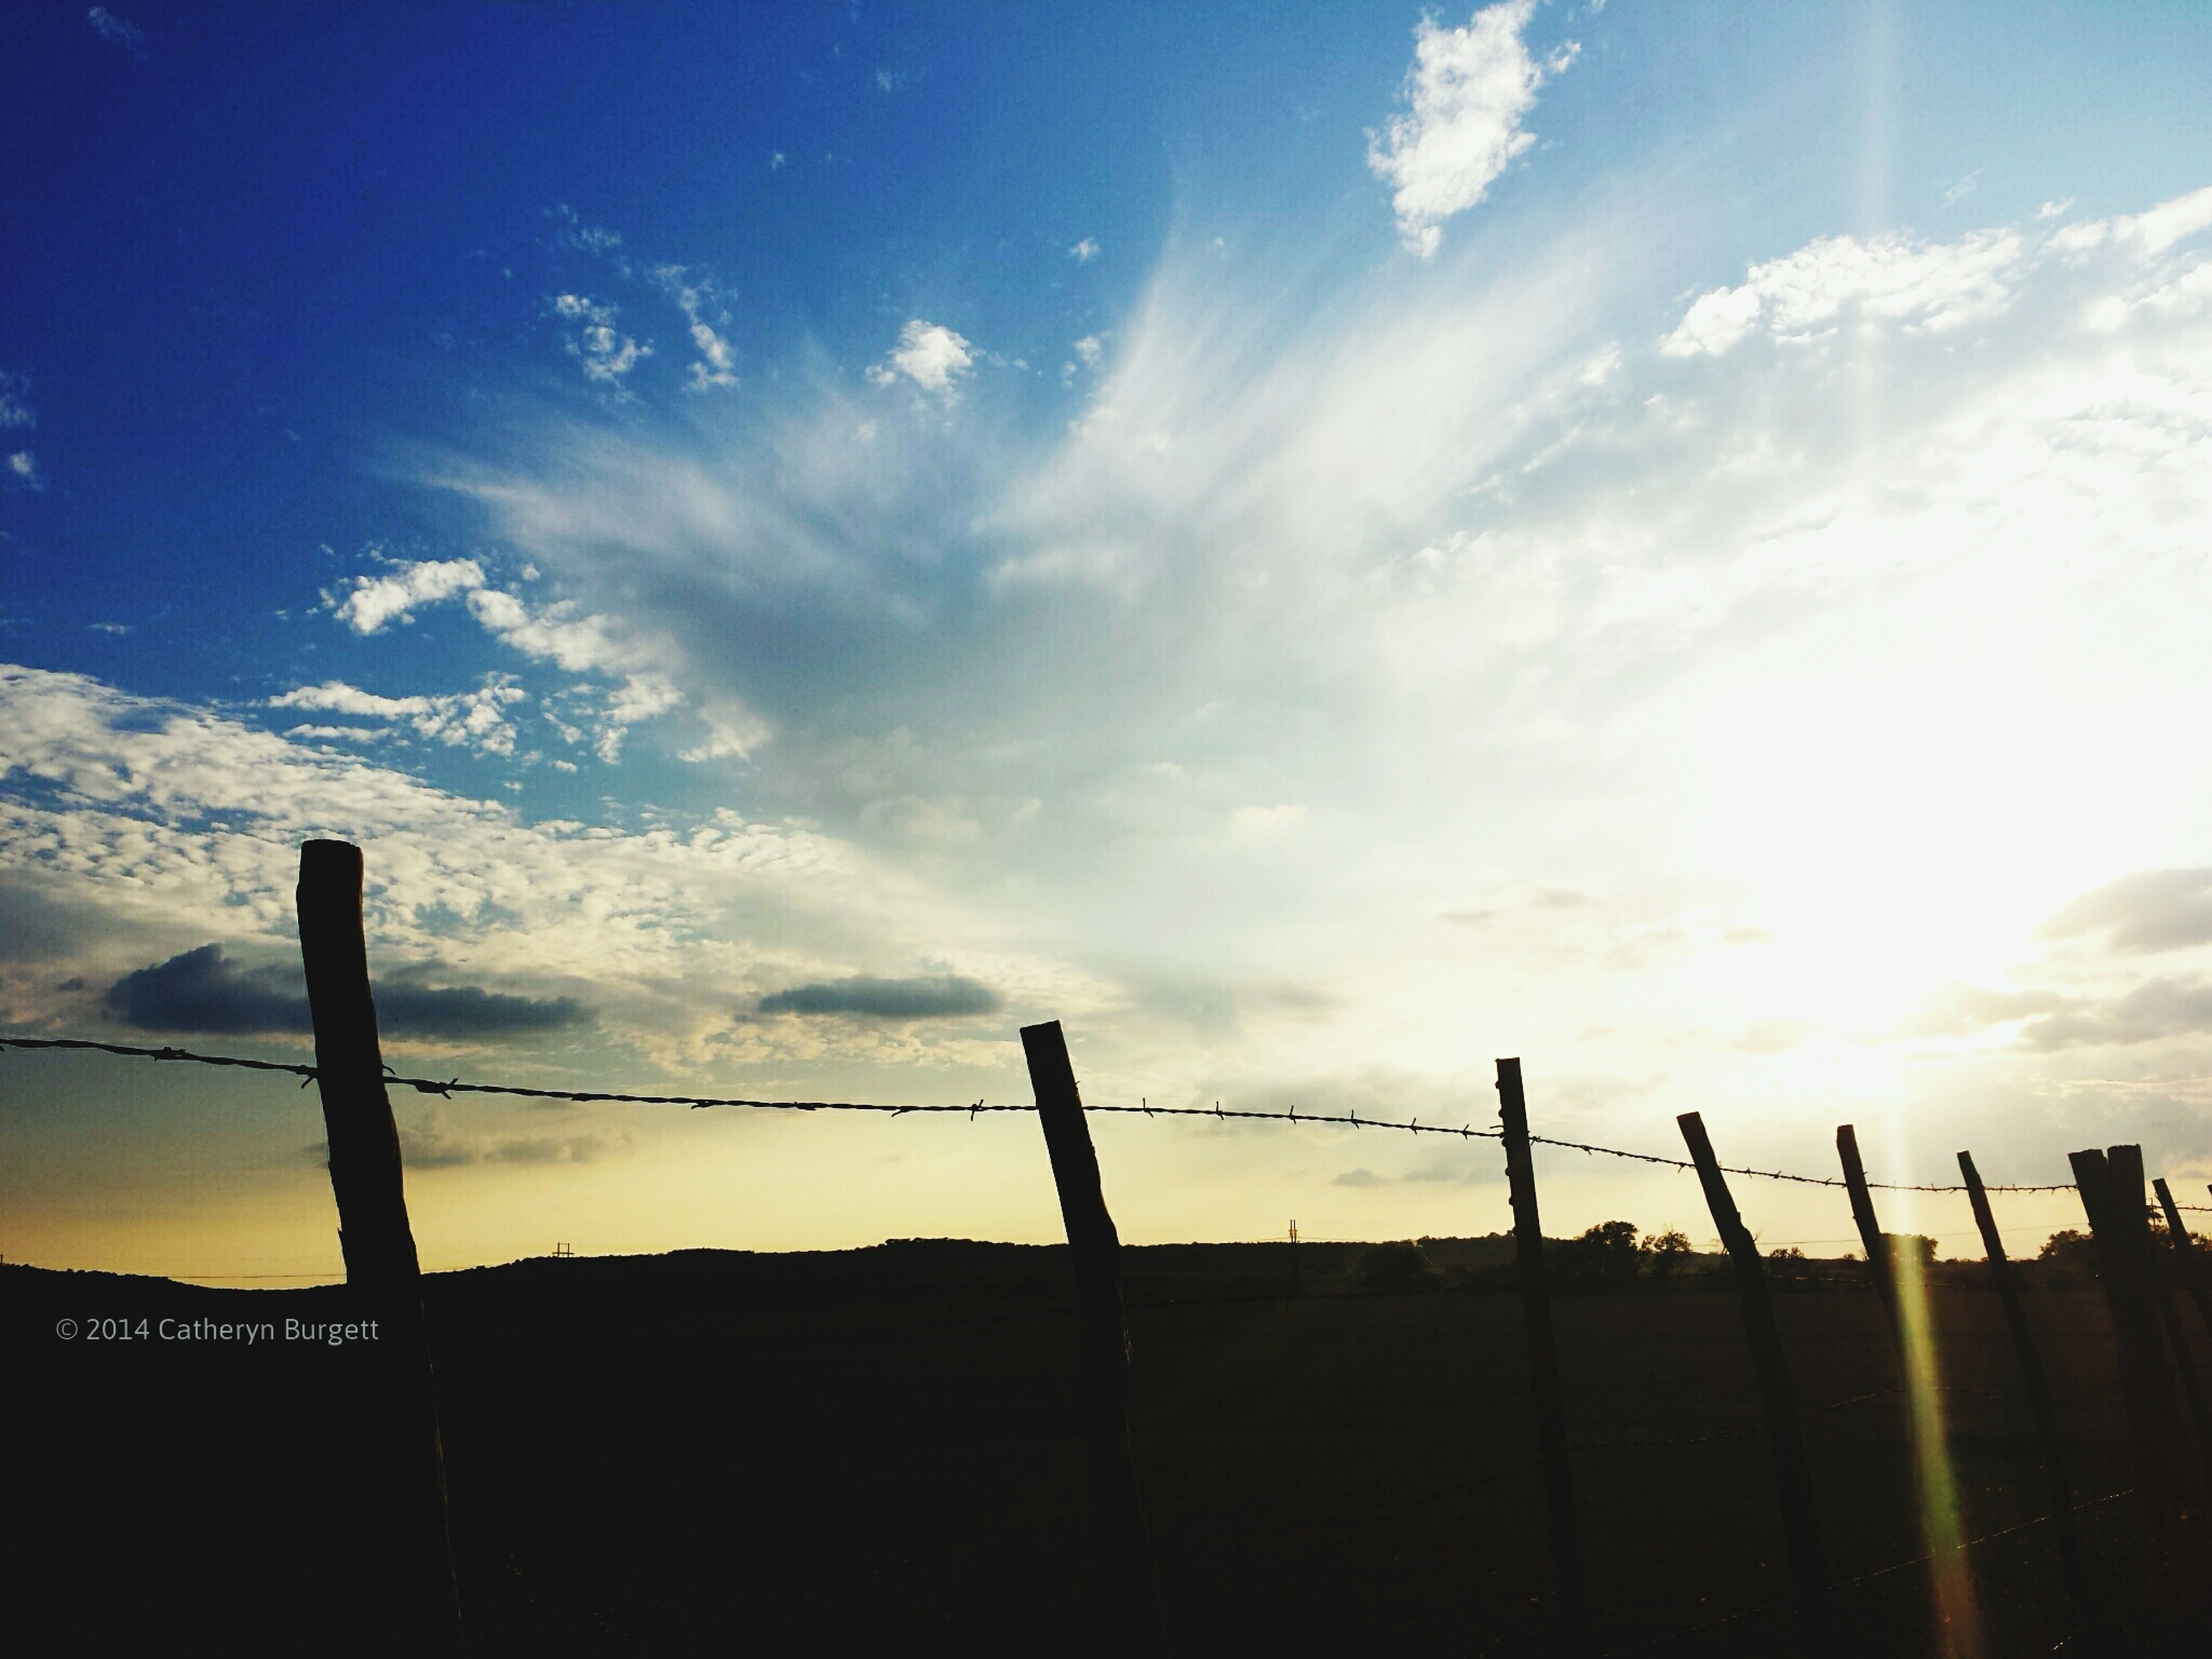 silhouette, sky, fence, cloud - sky, low angle view, sunset, protection, safety, cloud, tranquility, nature, security, beauty in nature, scenics, sunlight, tranquil scene, outdoors, cloudy, dusk, no people